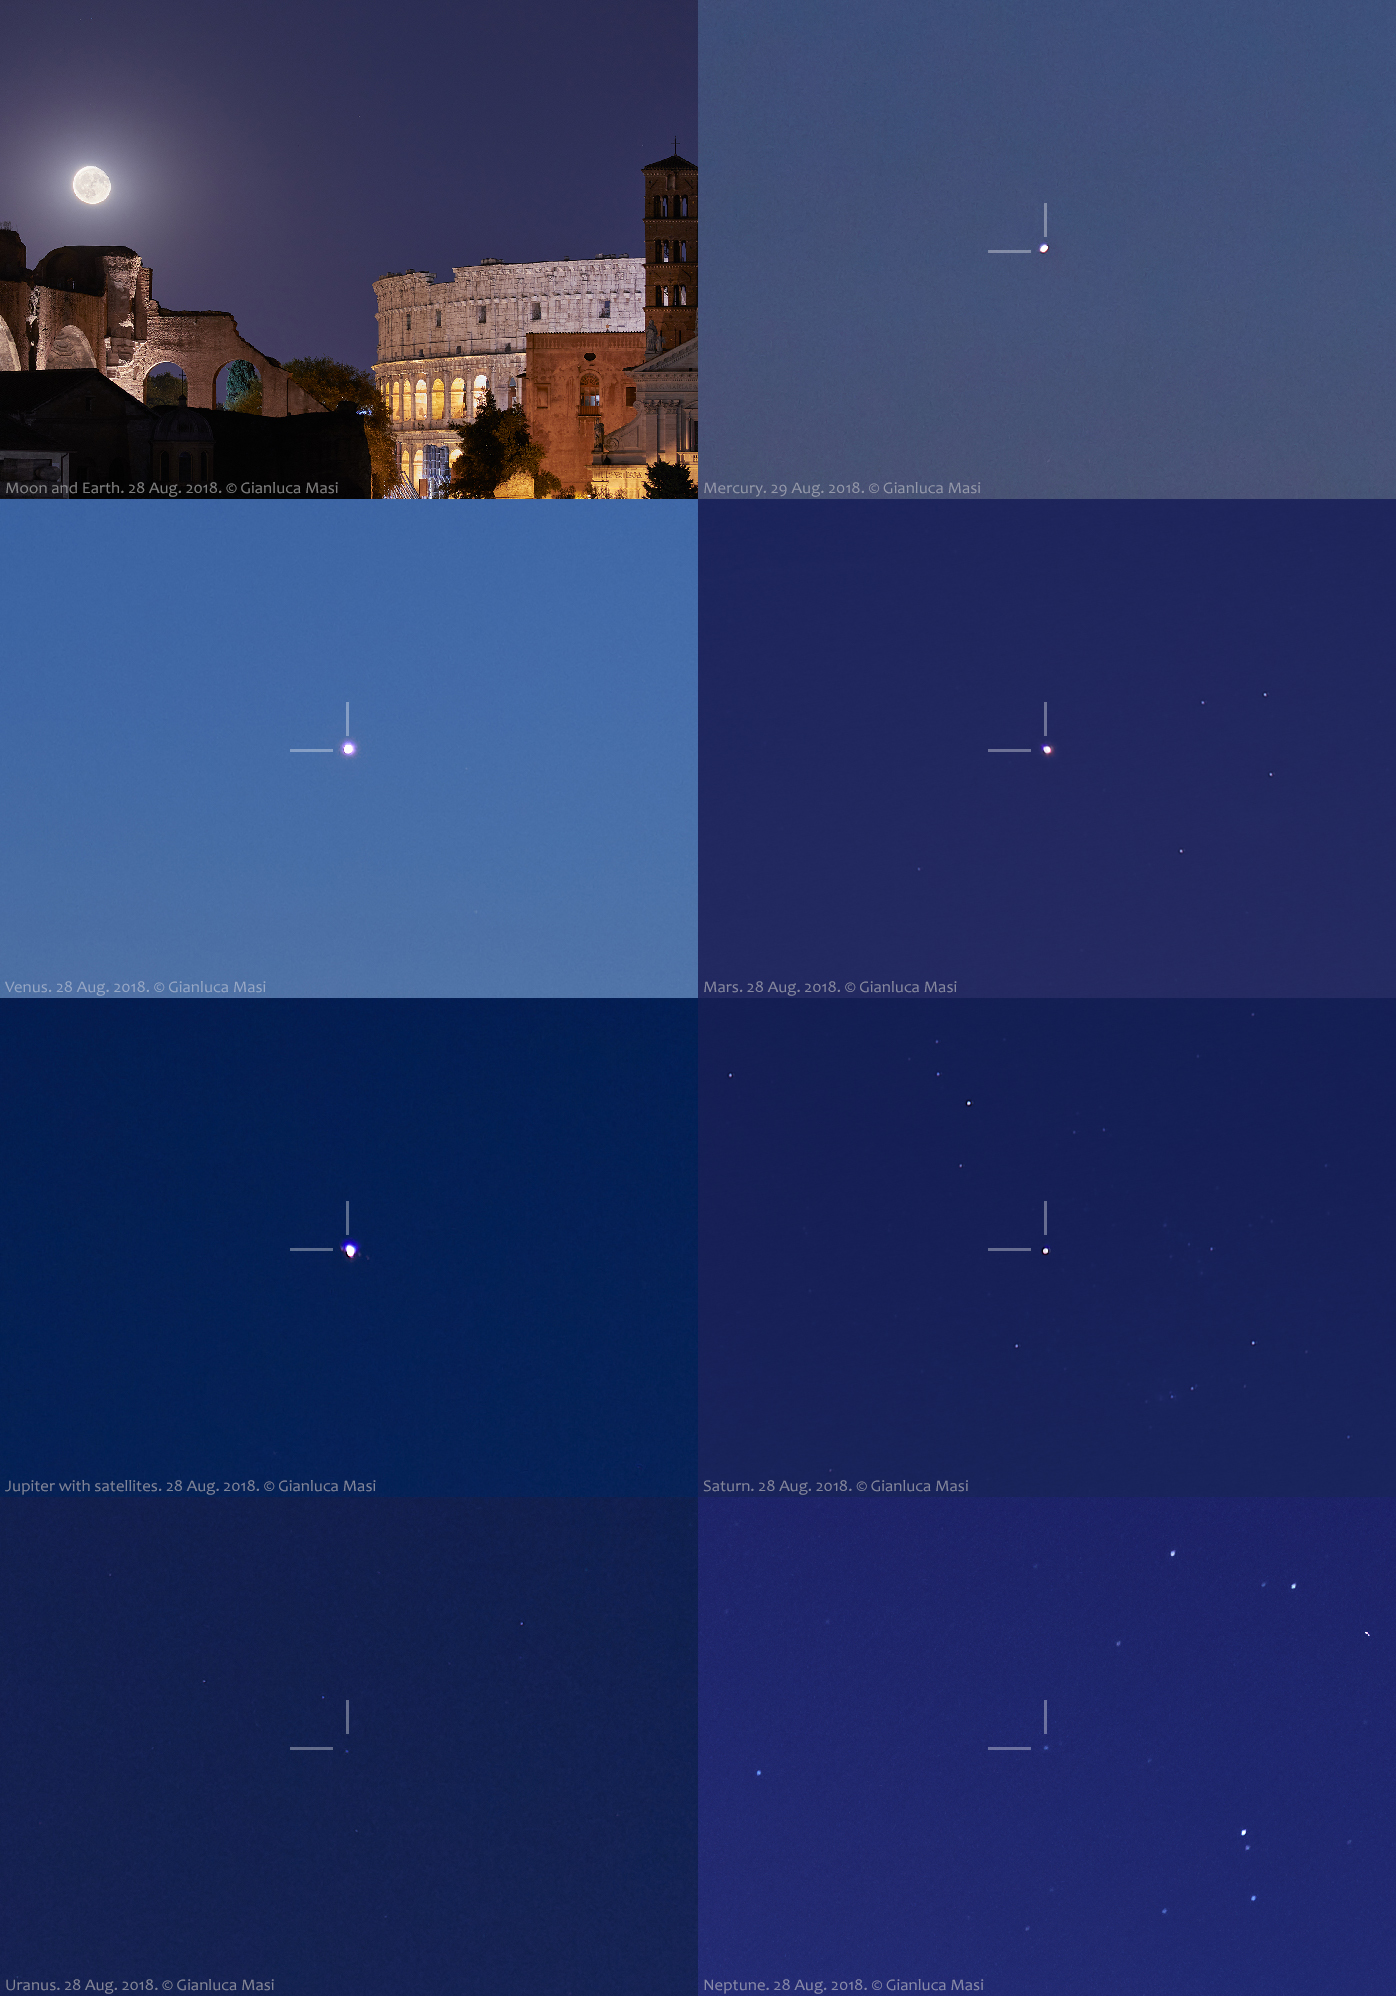 Poster of the Grand Tour of the Solar System described in this story. 28 and 29 Aug. 2018